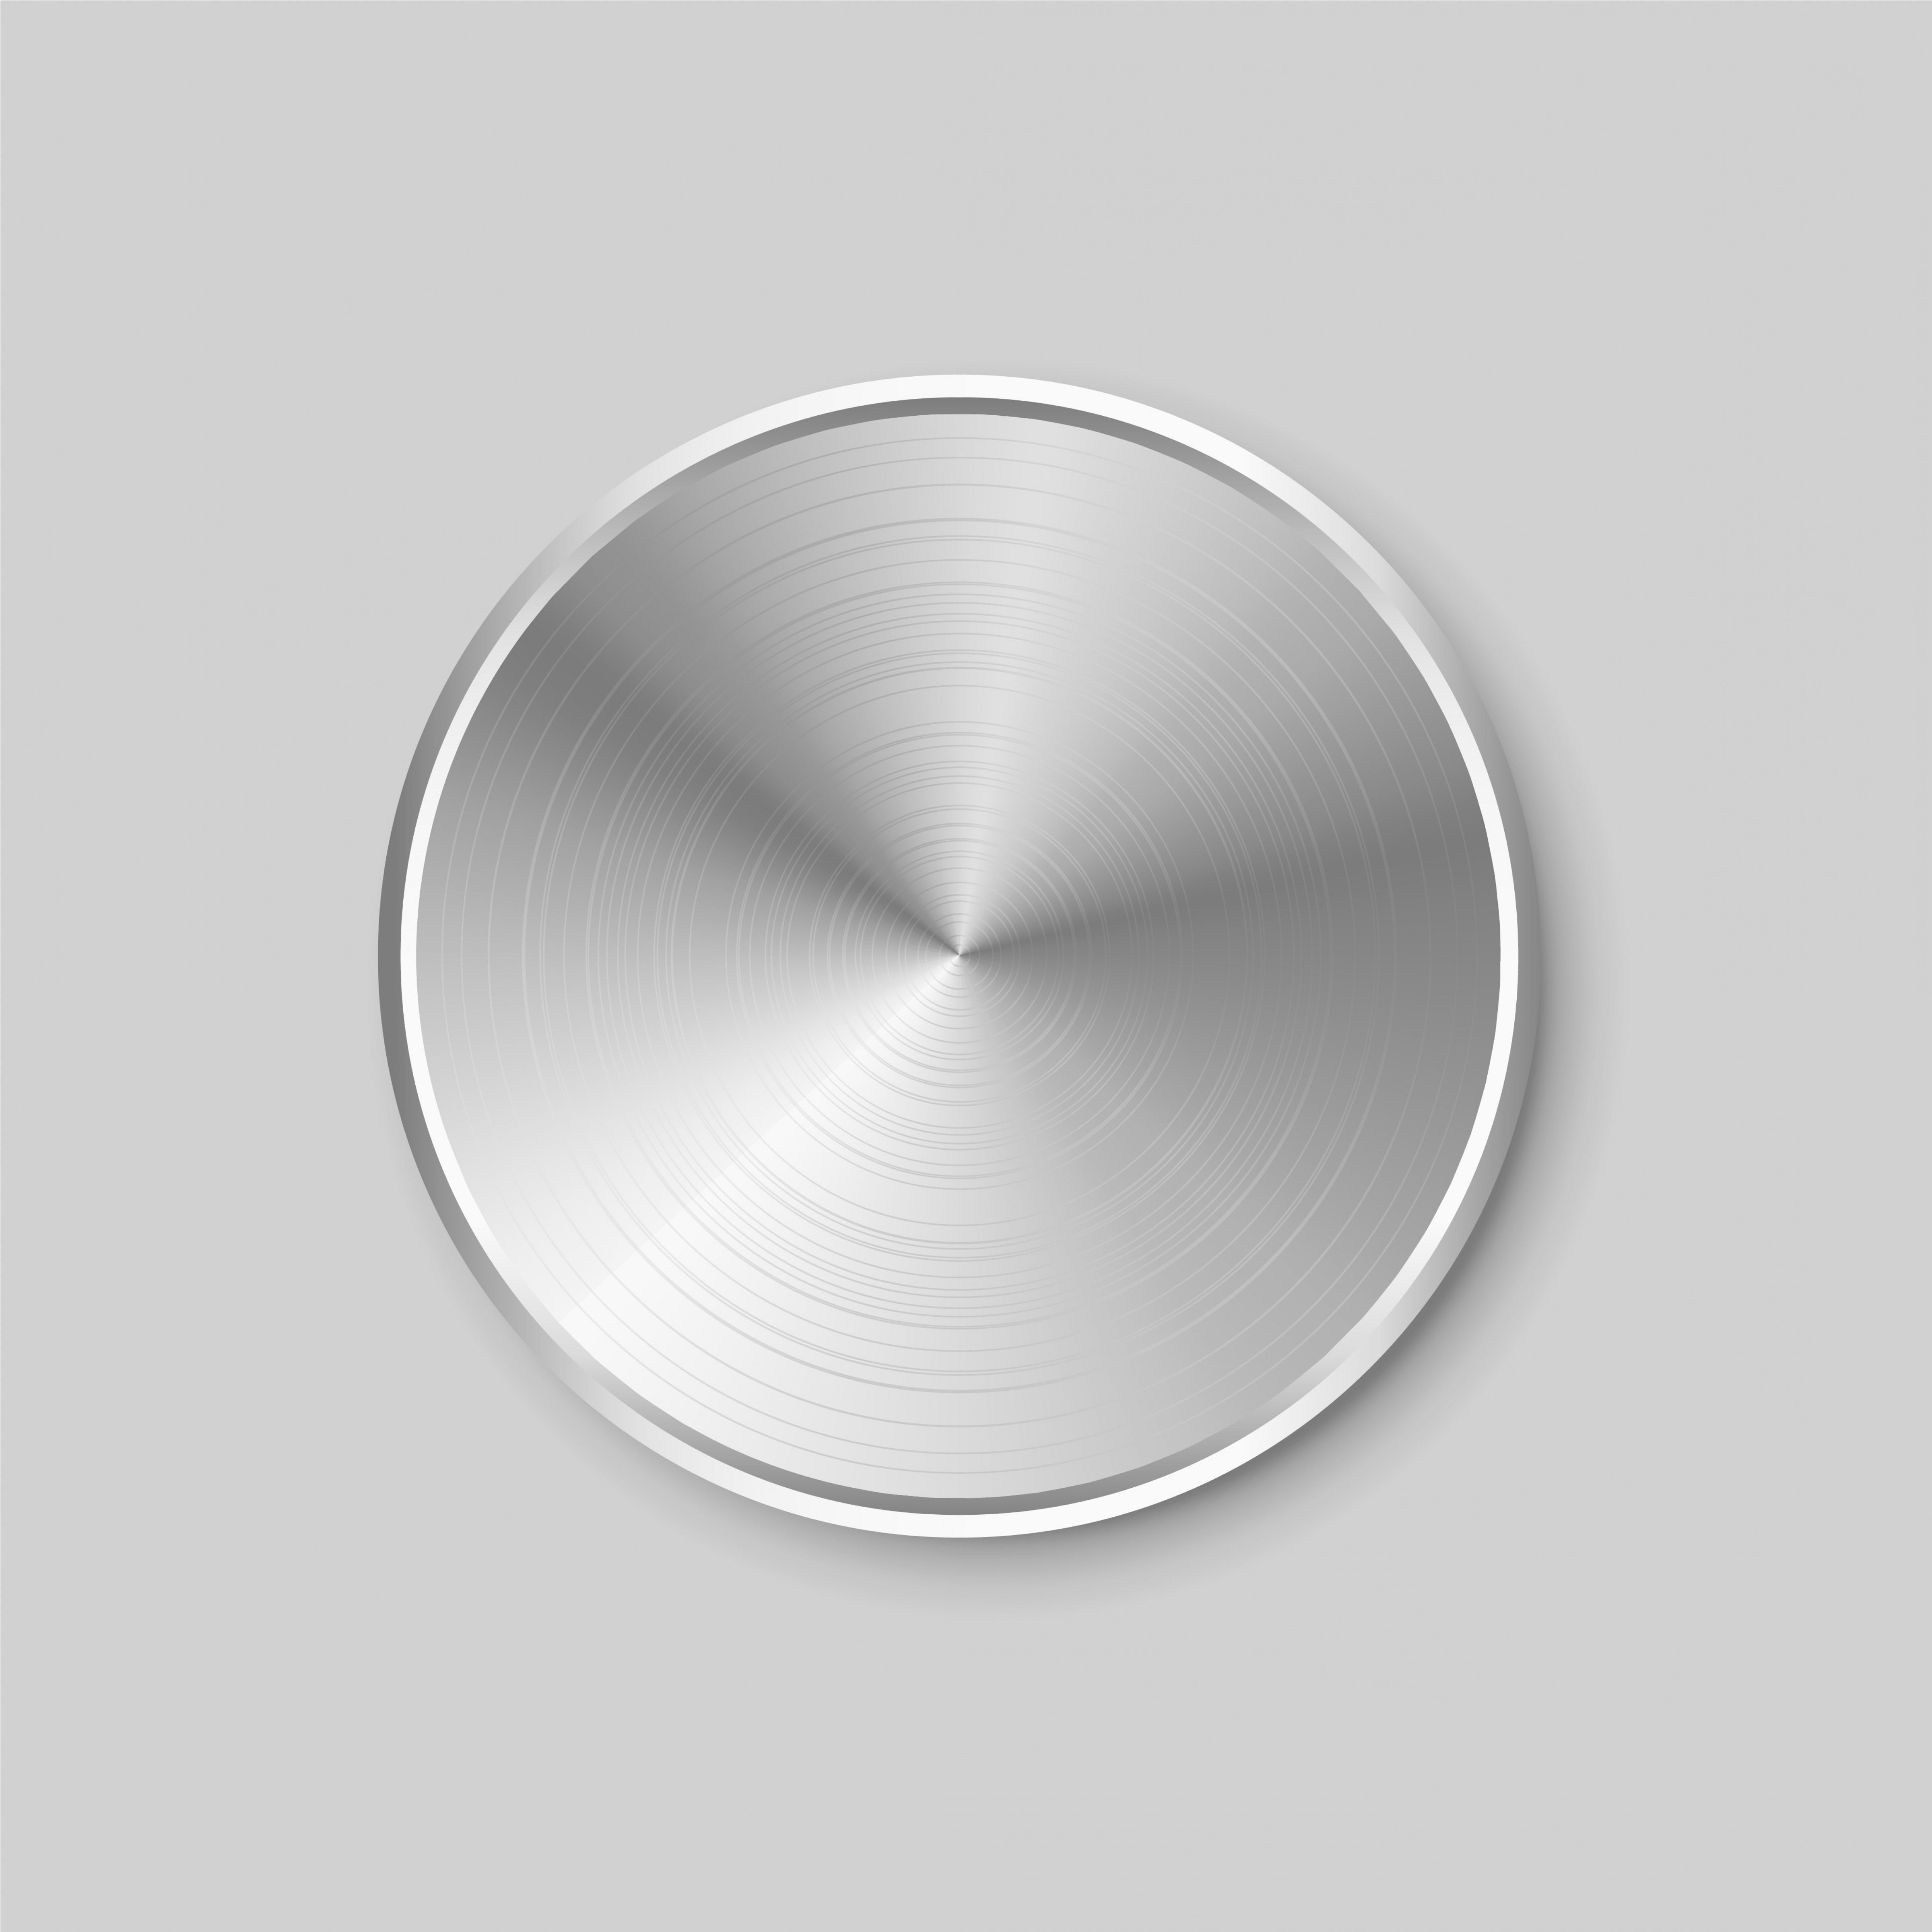 Metal Button Vector: Circular Realistic Metal Button With Brushed Steel Surface